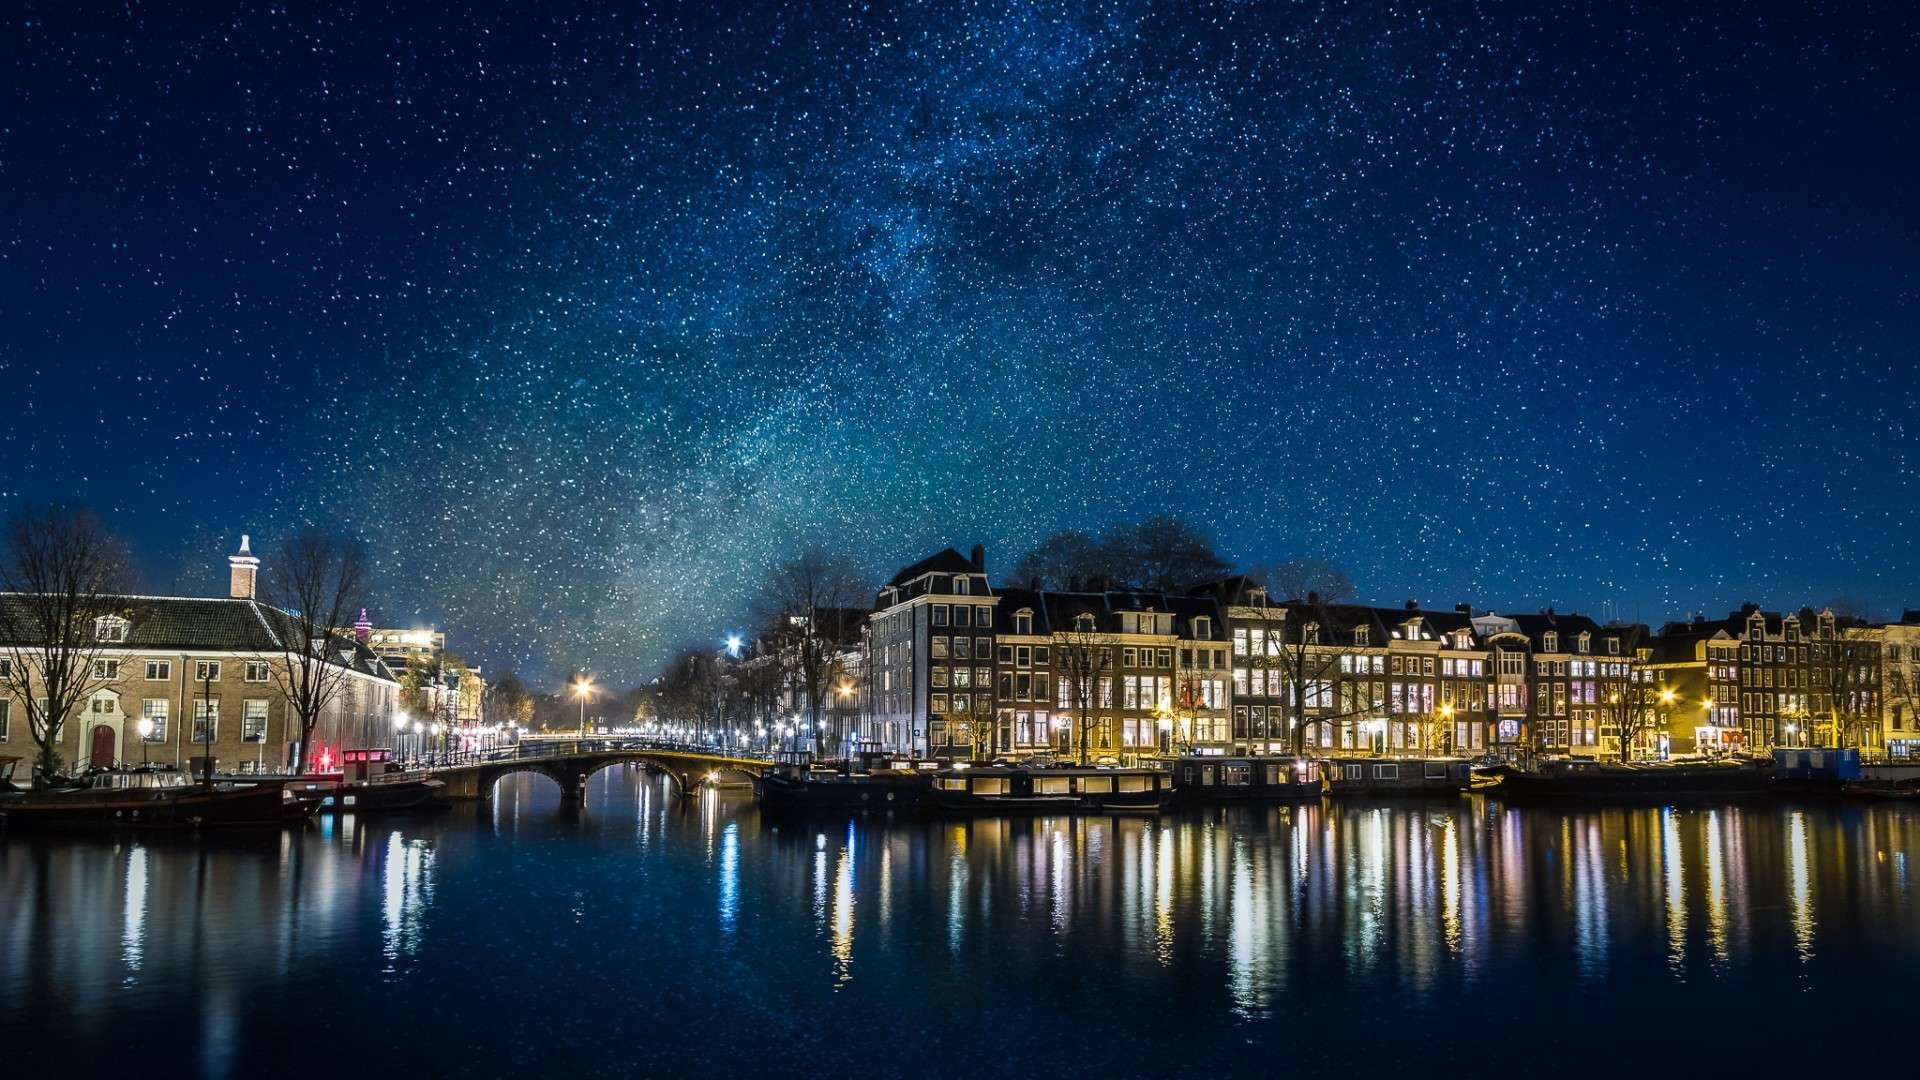 what-would-it-be-like-to-see-the-milky-way-over-amsterdam-1920x1080